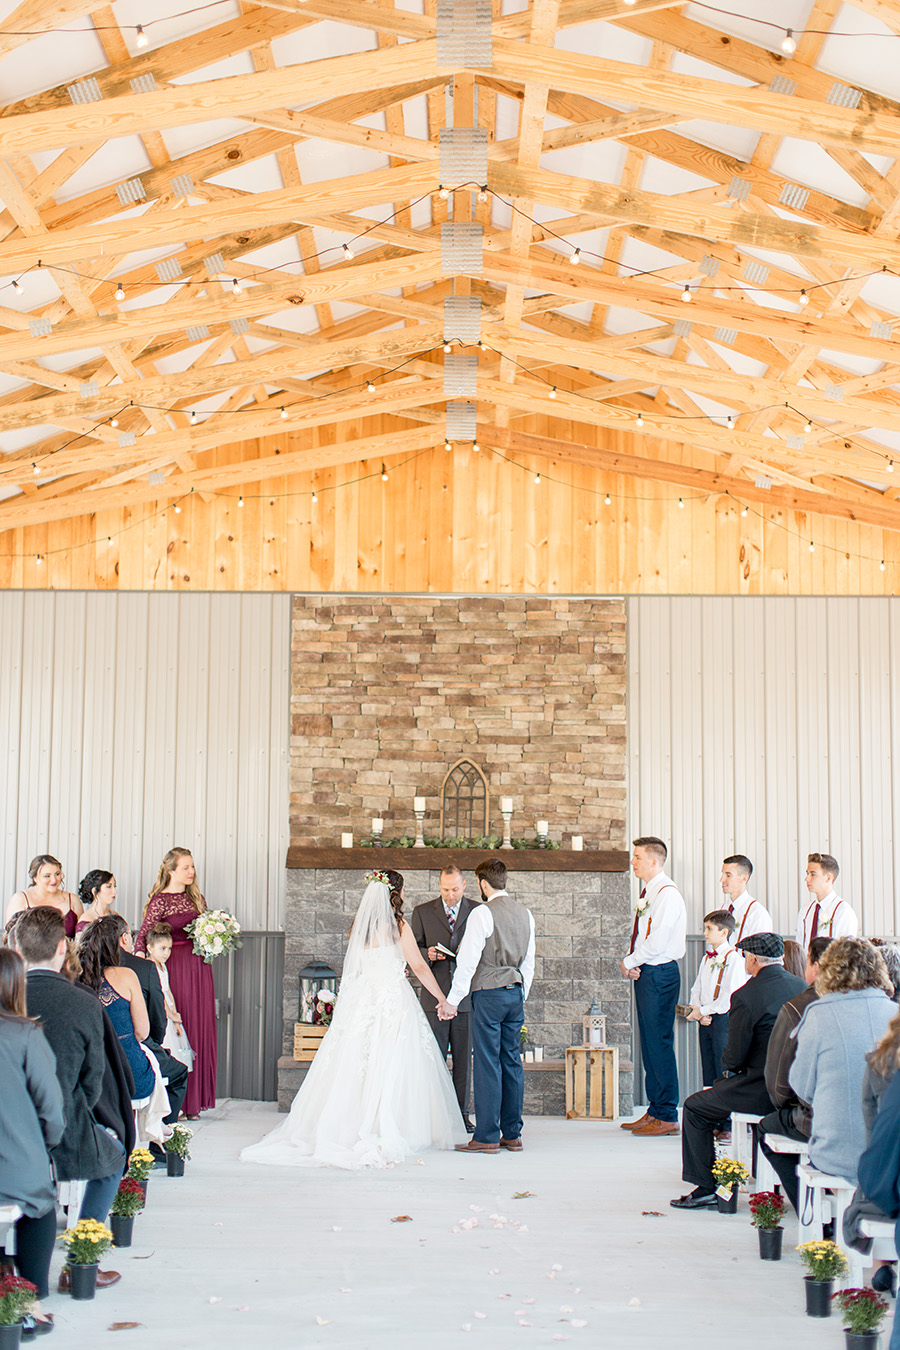 outdoor wedding ceremony at Turkey Trac Farms